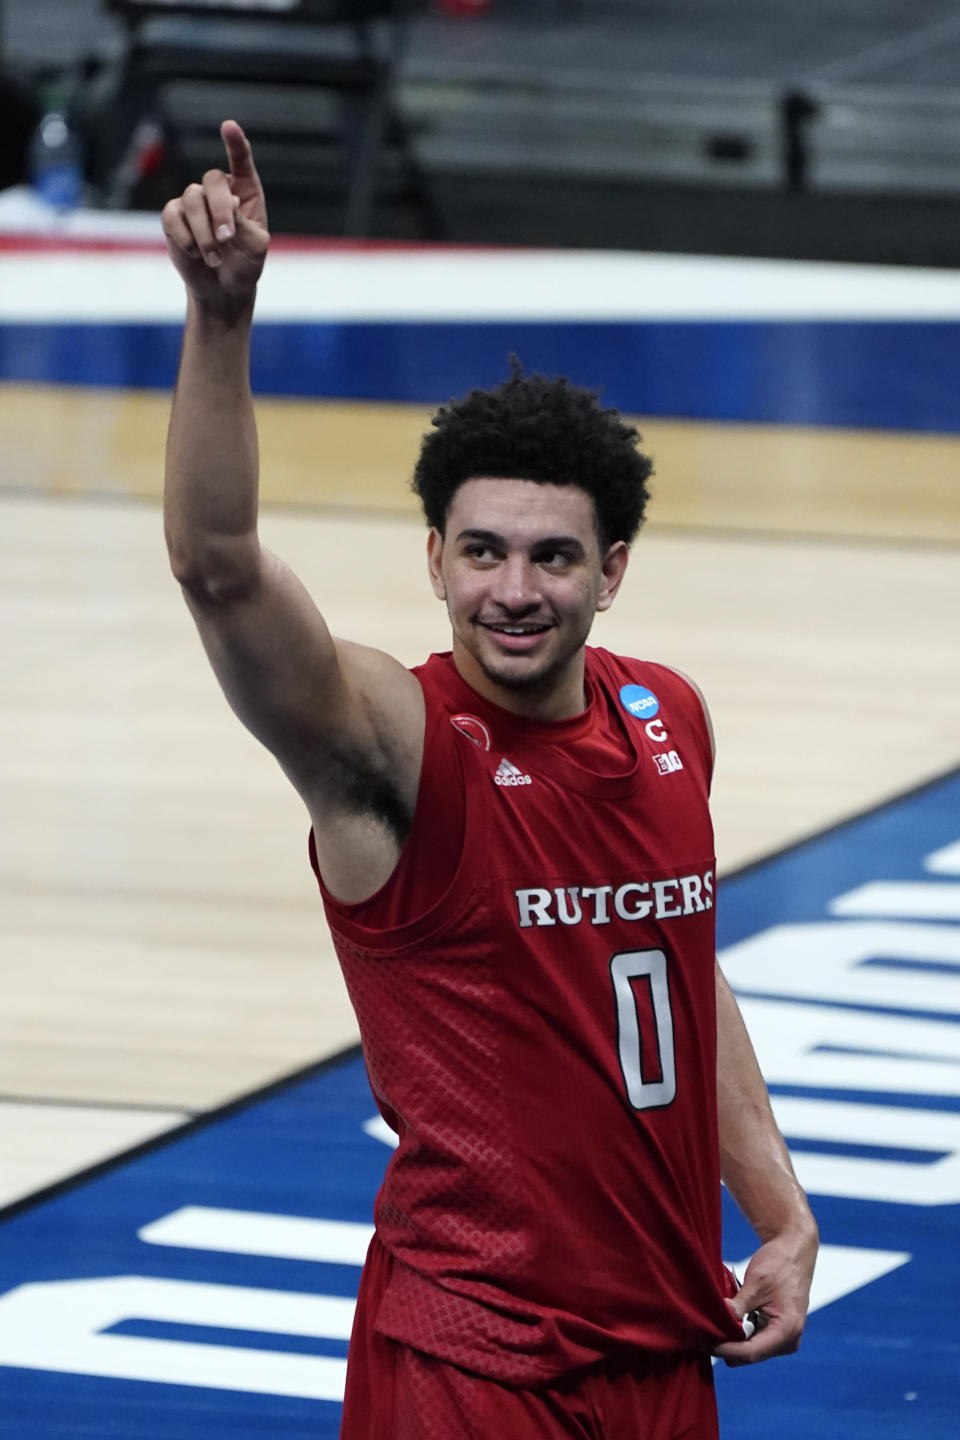 Rutgers guard Geo Baker (0) celebrates after beating Clemson 60-56 in a men's college basketball game in the first round of the NCAA tournament at Bankers Life Fieldhouse in Indianapolis, Friday, March 19, 2021. Rutgers won 60-56. (AP Photo/Paul Sancya)